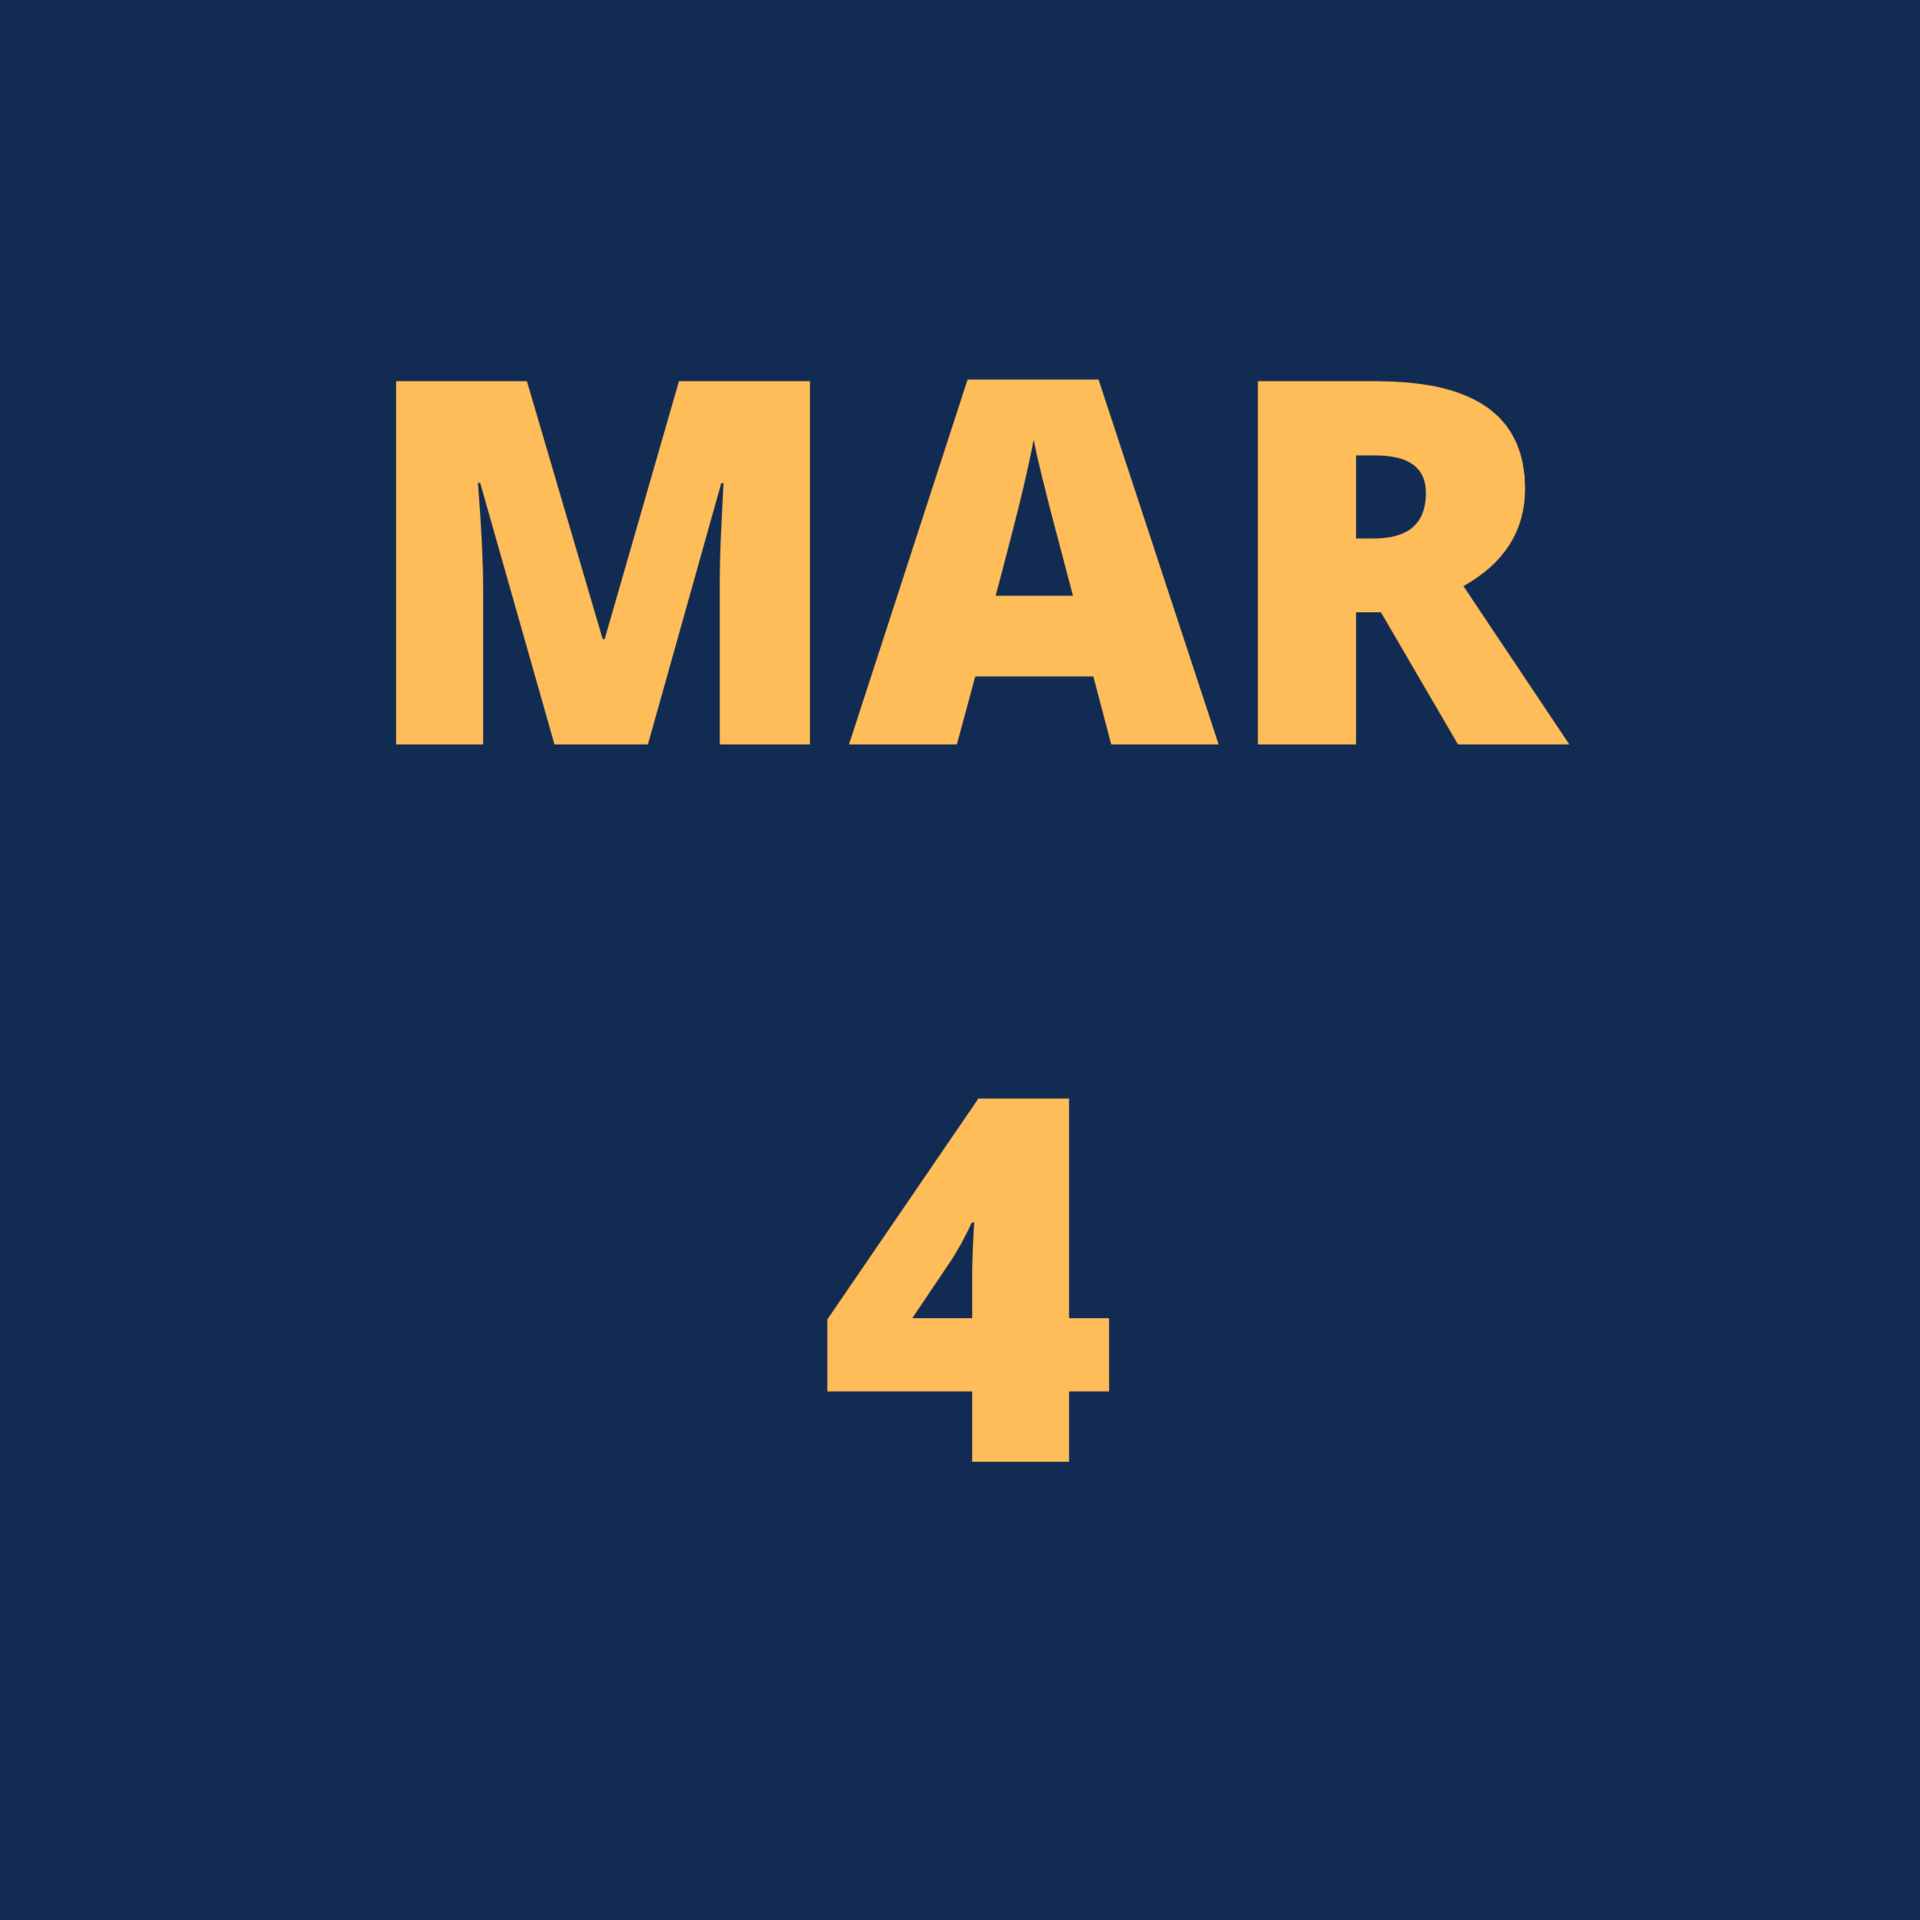 march 1 icon